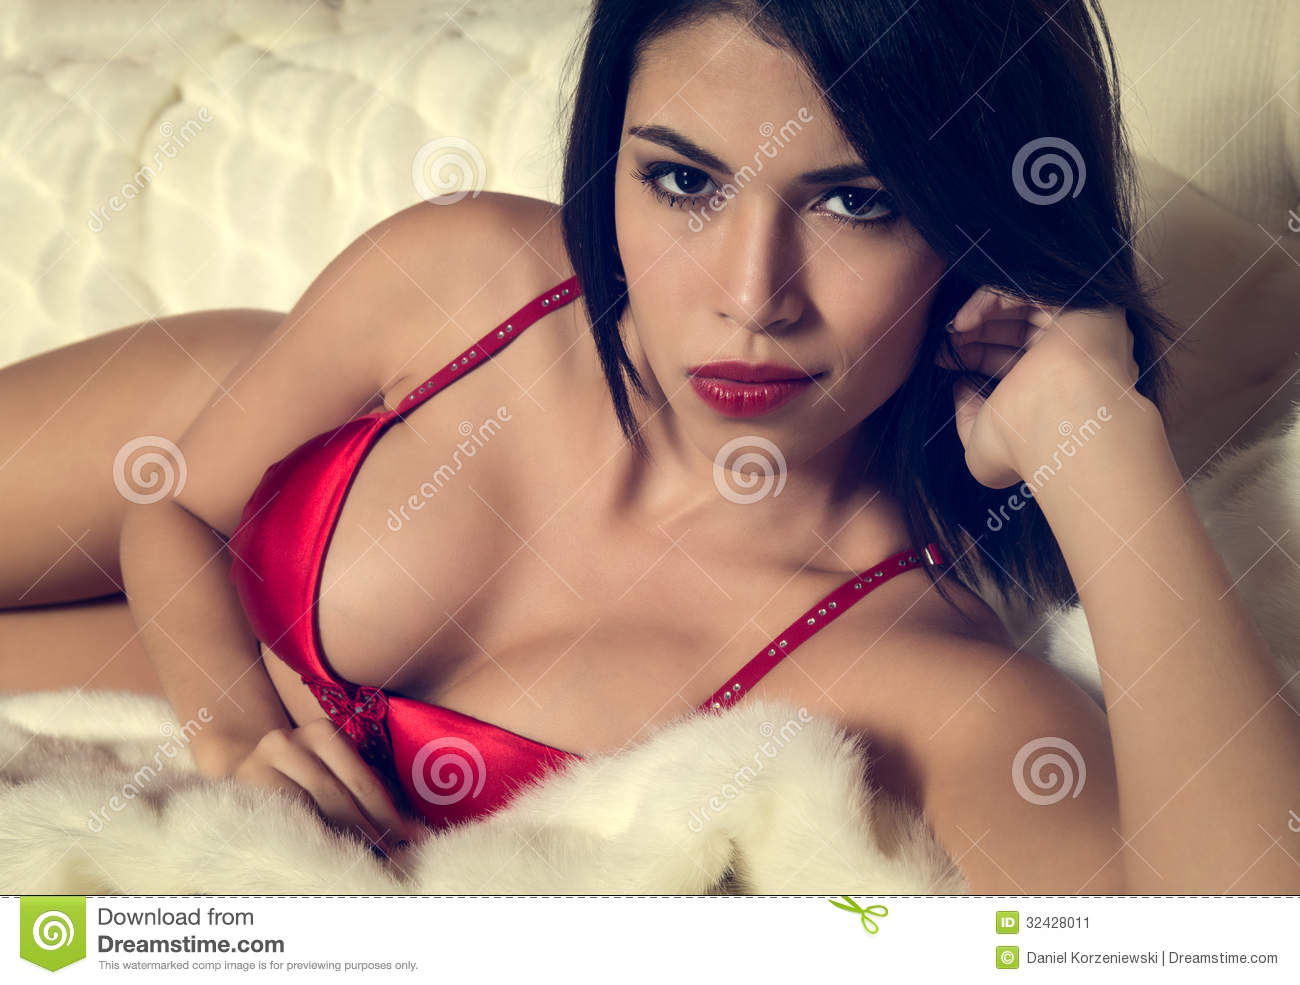 ef5da821782 voluptuous brunette woman in red lingerie lying on her bed looking at the  camera with a seductive sultry look while pouting her red lips.